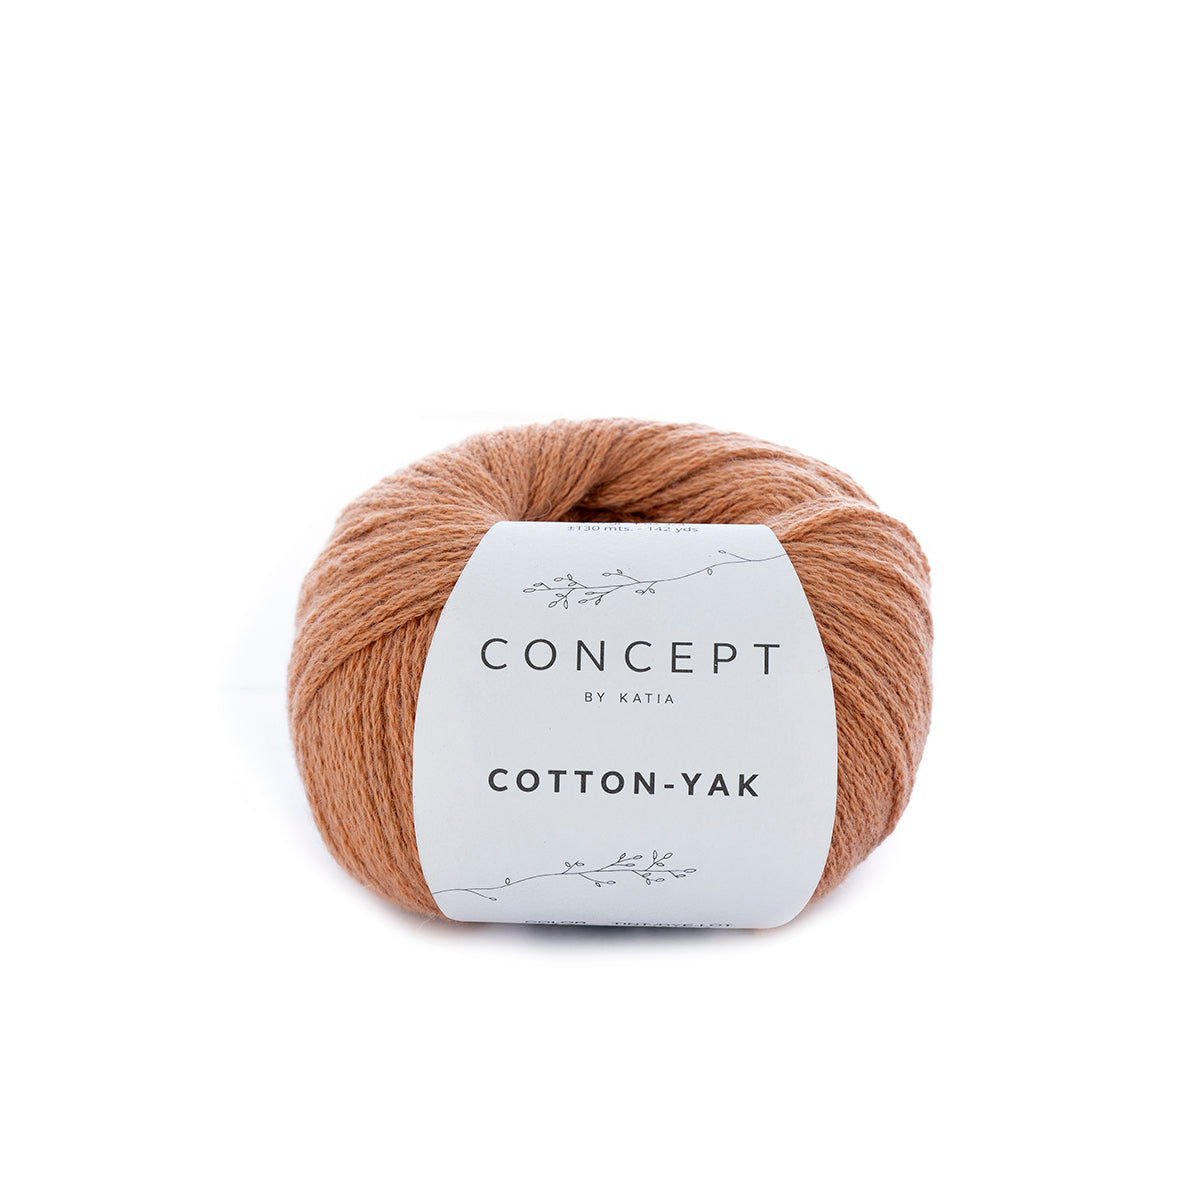 katia cotton-yak